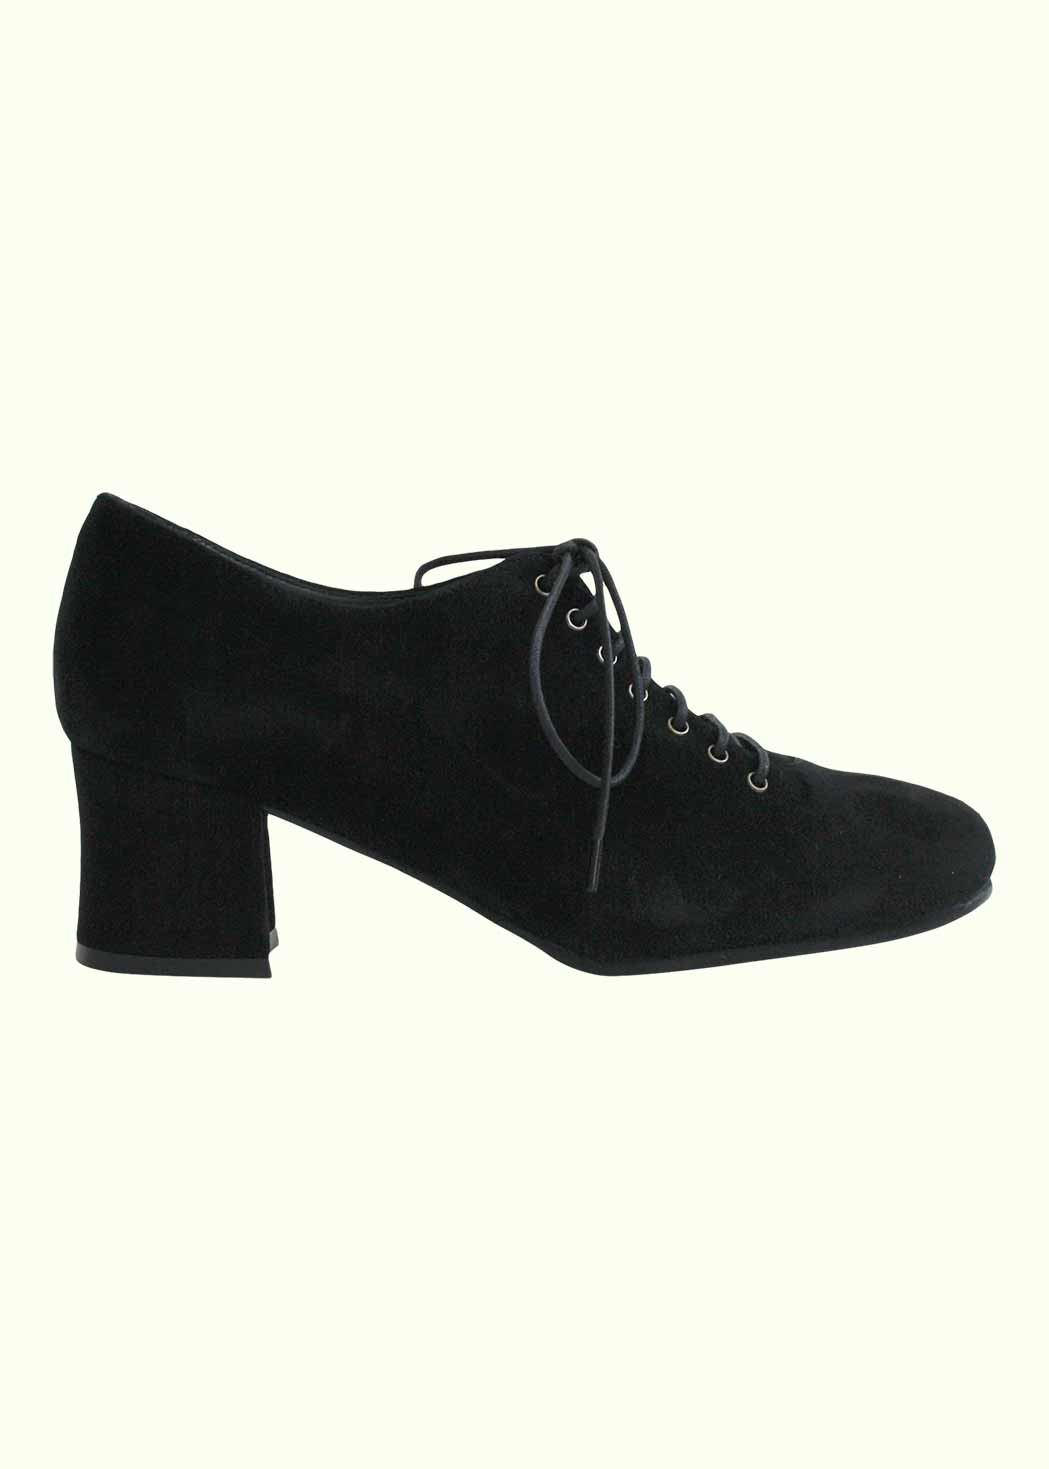 Retro inspired shoes in black suede from Nordic Shoepeople